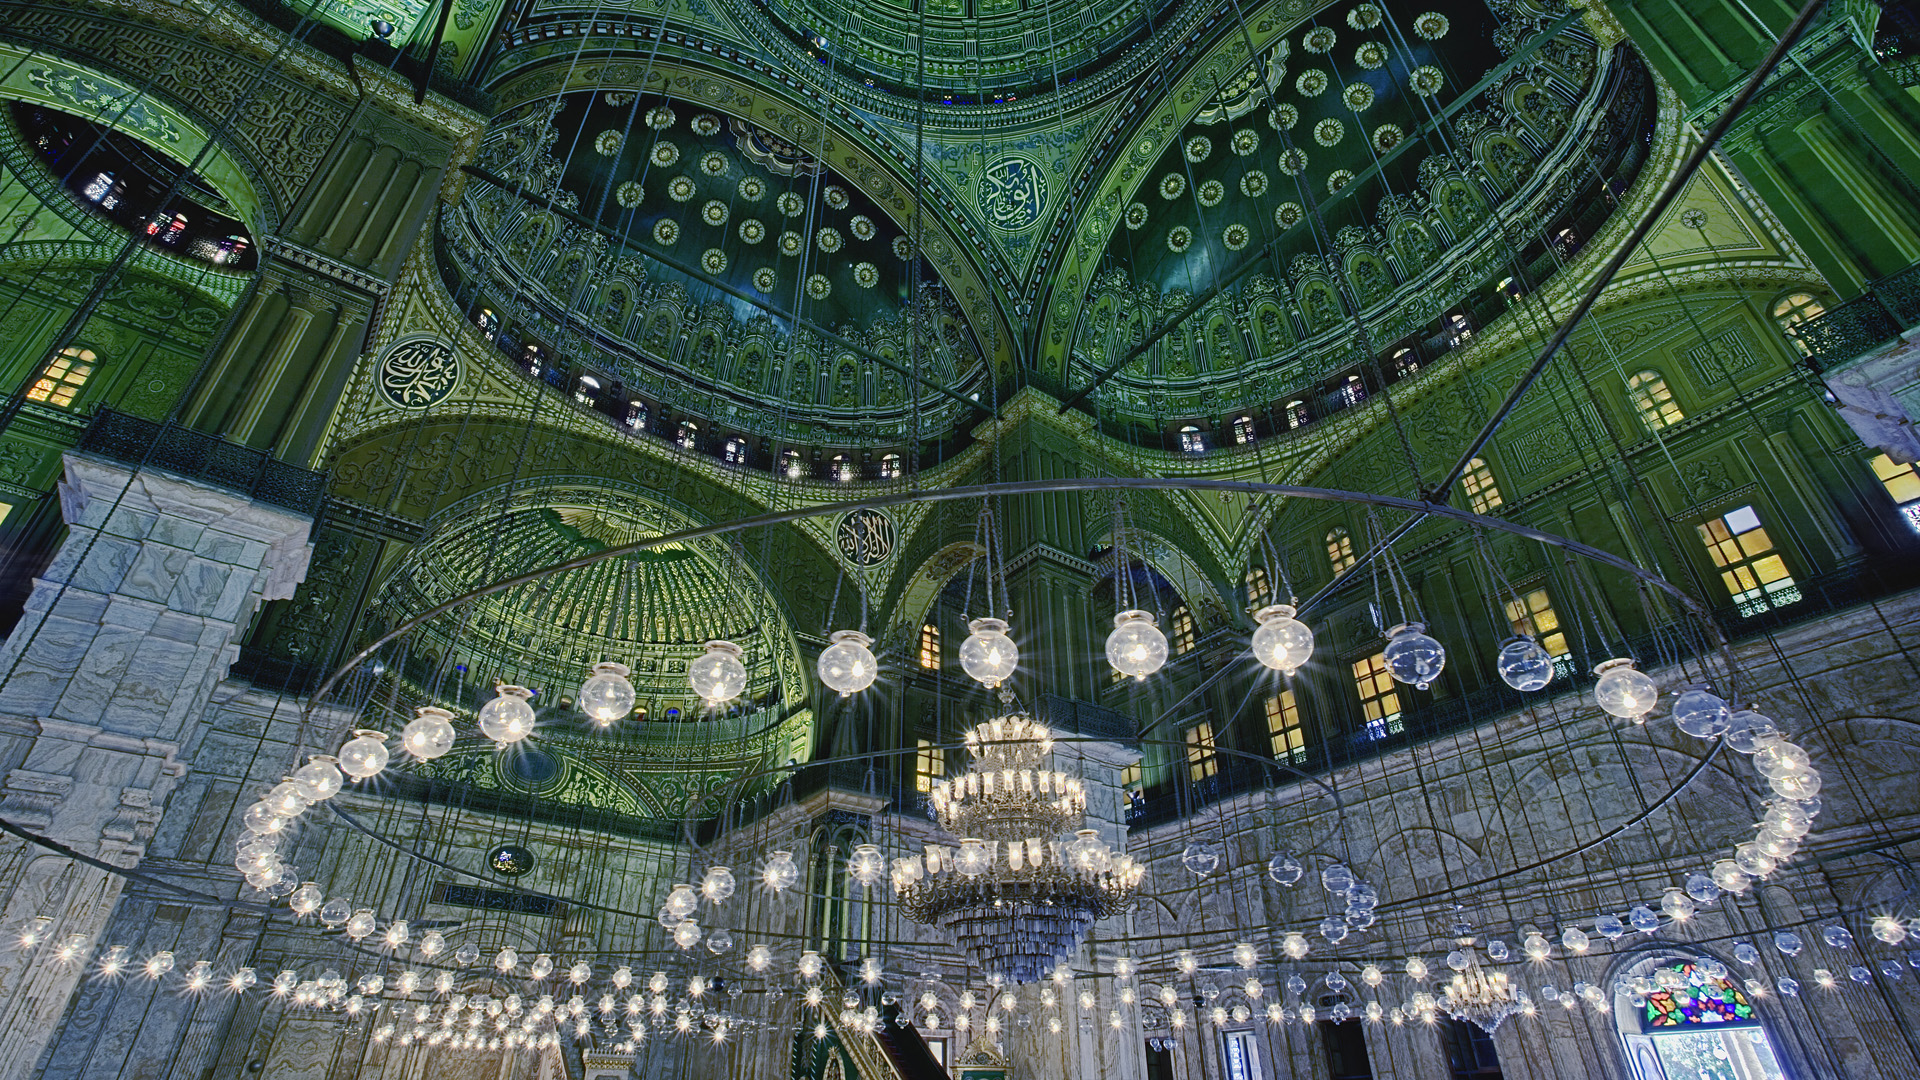 Iphone X Inside Wallpaper Hd Mosque Of Muhammad Ali Hd Wallpaper Background Image